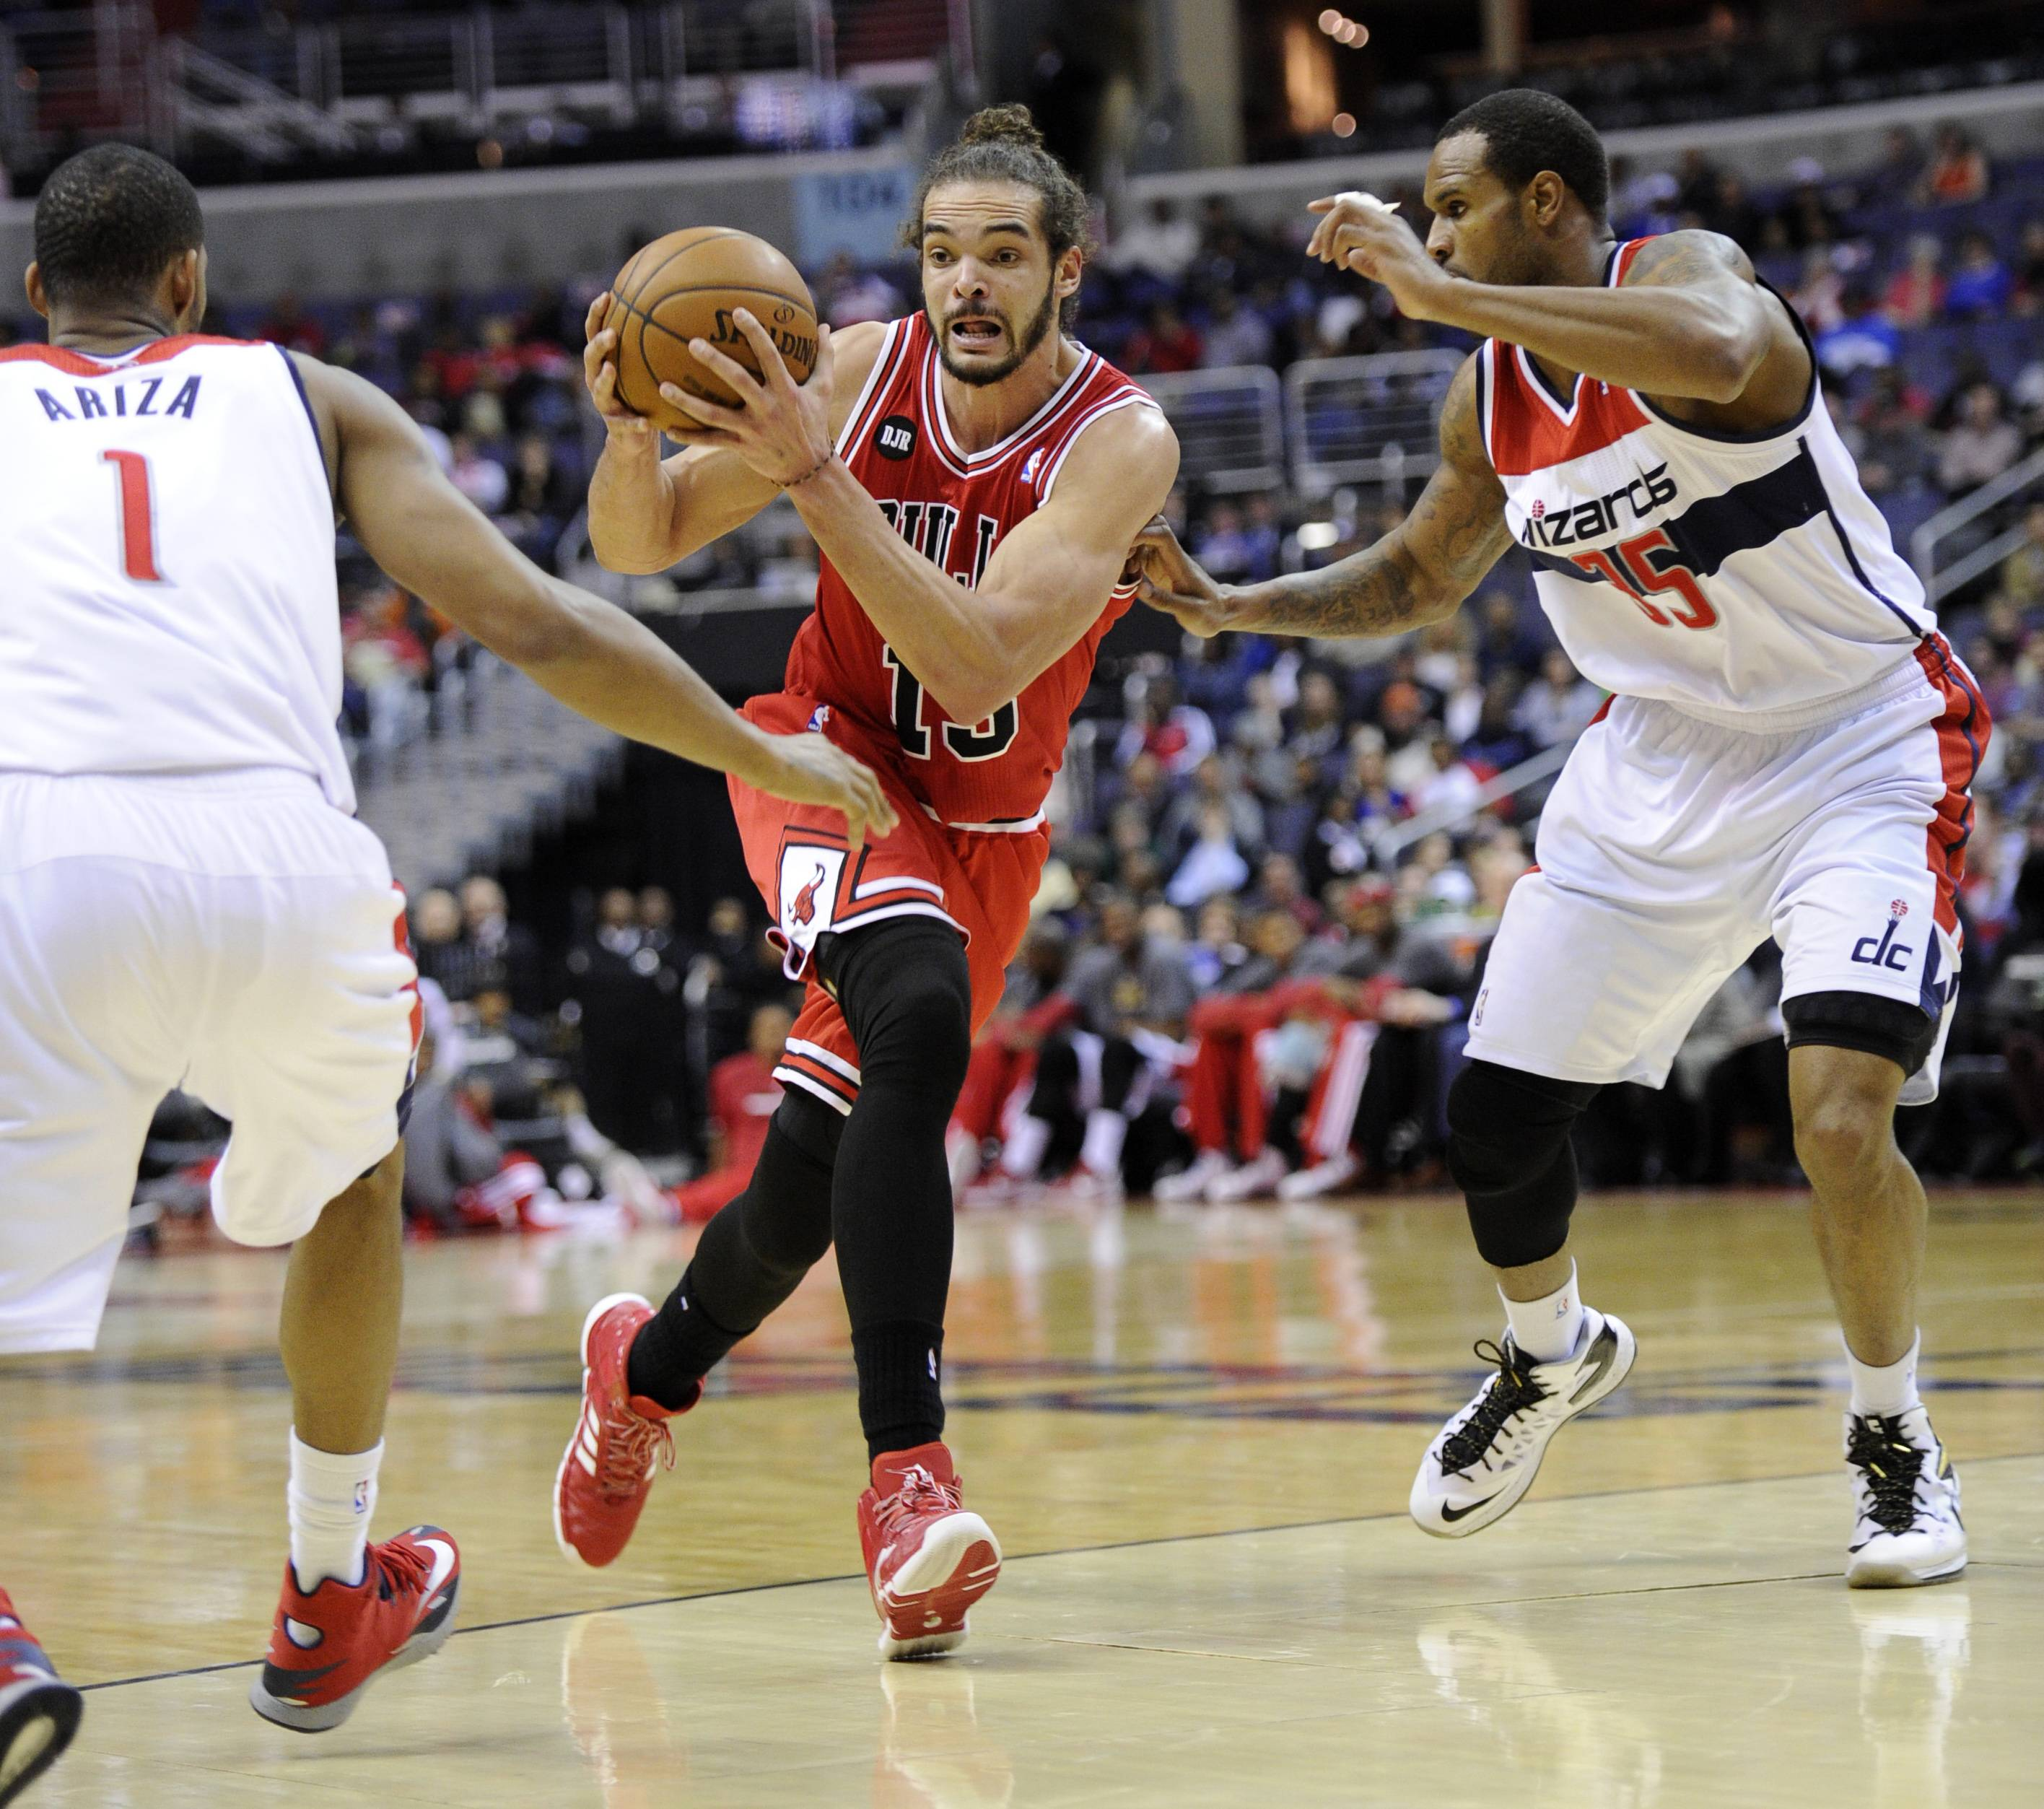 Chicago Bulls center Joakim Noah, center, drives to the basket against Washington Wizards' Trevor Ariza (1) and Trevor Booker (35) during the first half of an NBA basketball game, Saturday, April 5, 2014, in Washington.